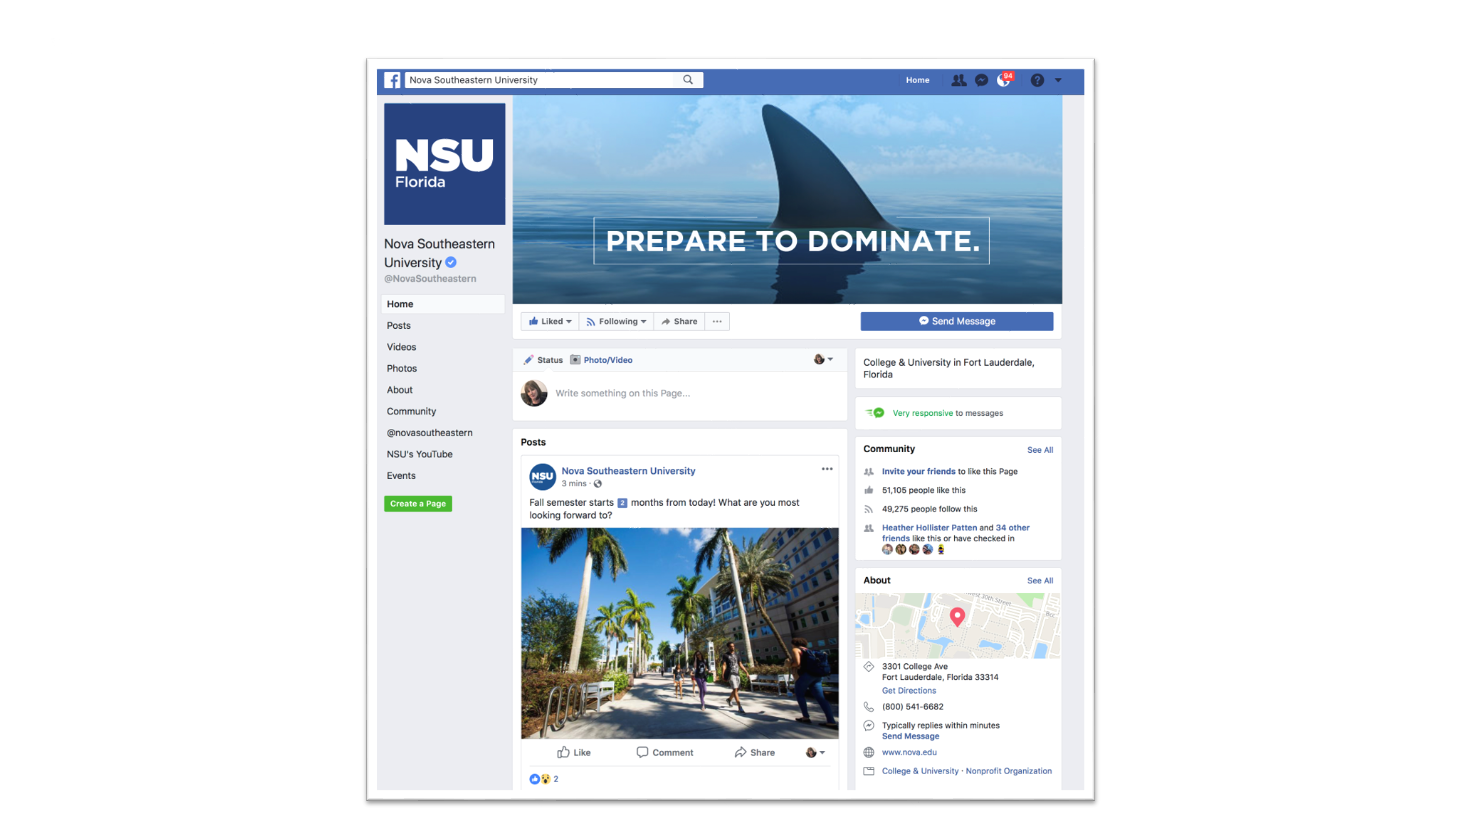 NSU Florida Facebook page